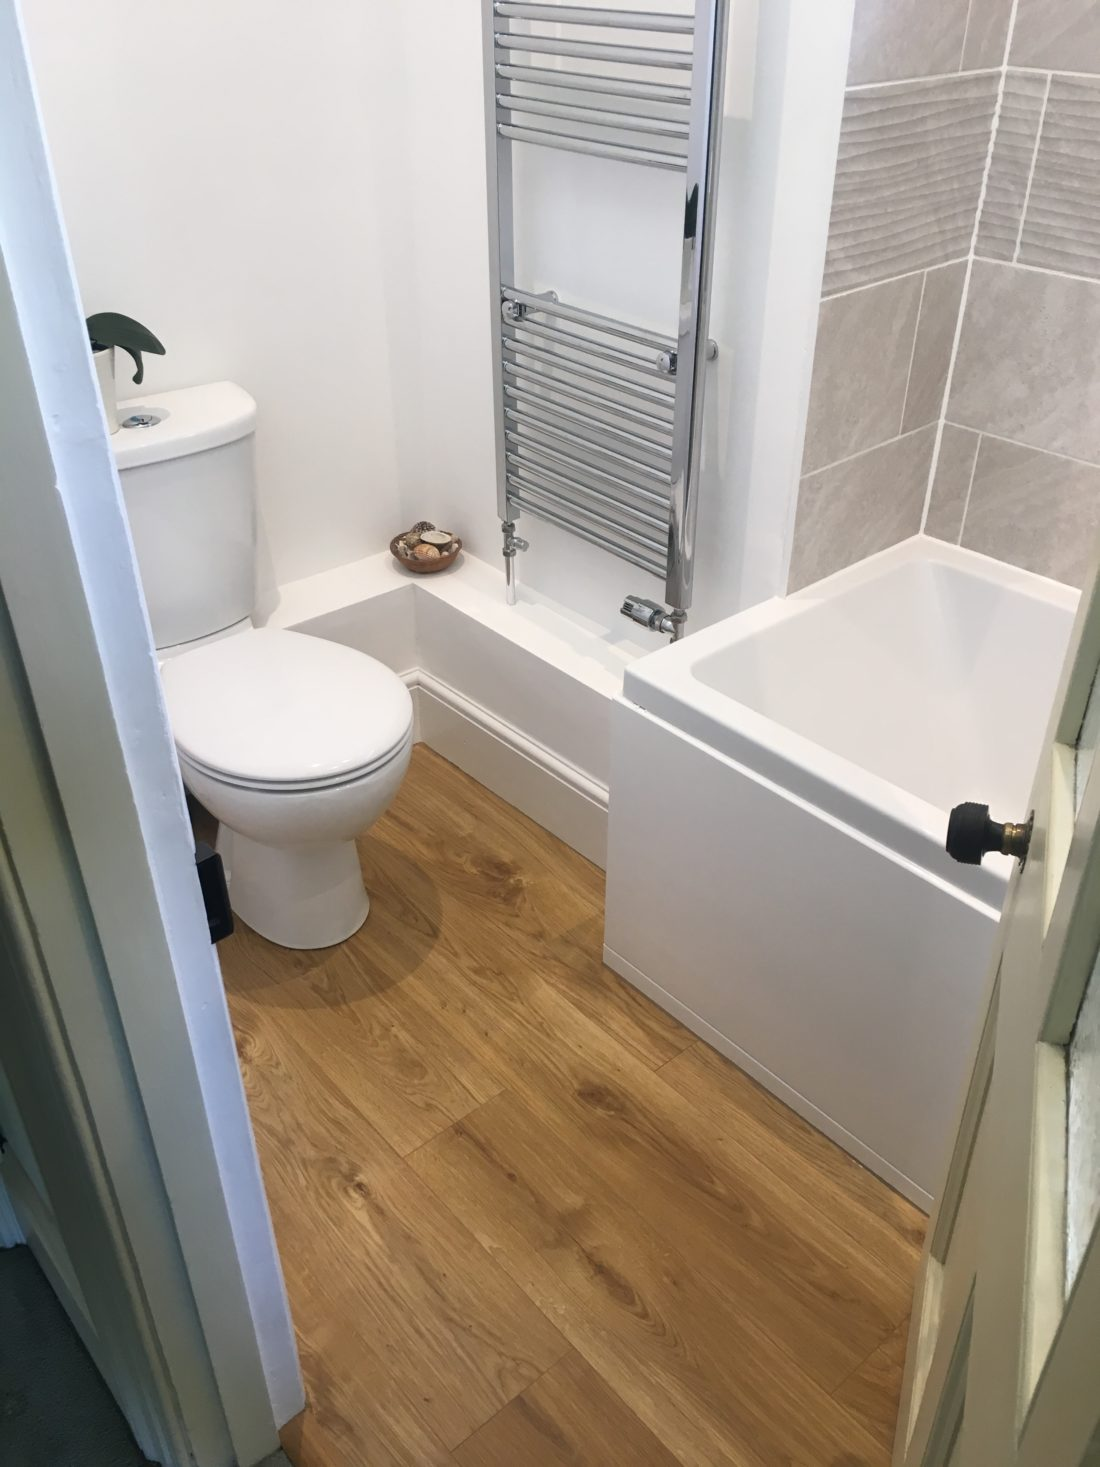 Bathrooms installers in Newton Abbot - DSB Ltd